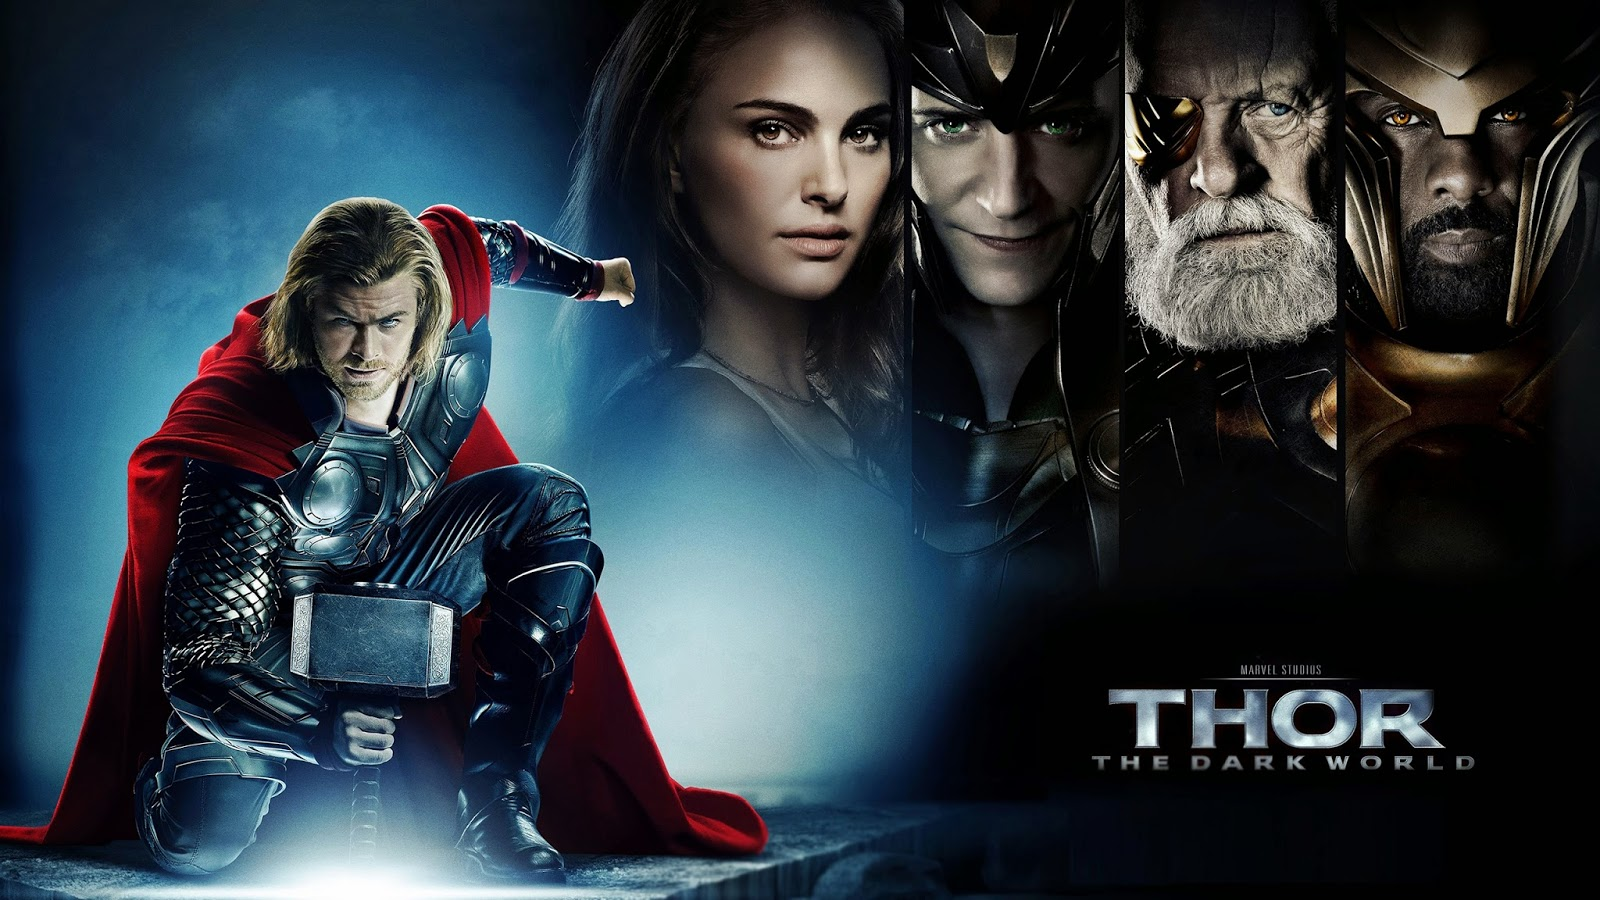 new english moviee 2014 click hear............................. Thor+the+dark+world+%25282%2529